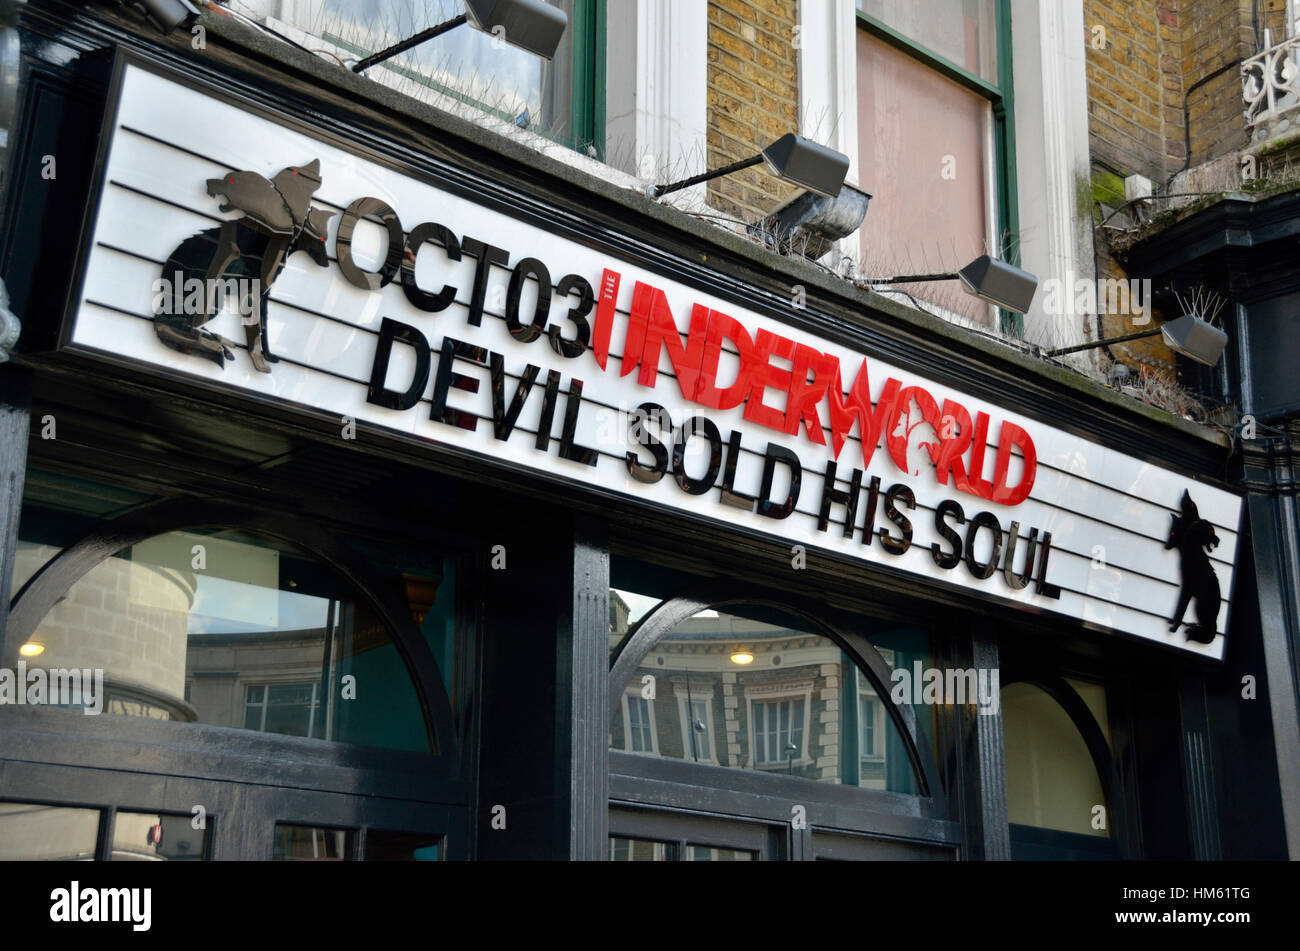 Hoarding promoting the band Devil Sold his Soul outside the Underworld music venue in Camden Town, London, UK. - Stock Image